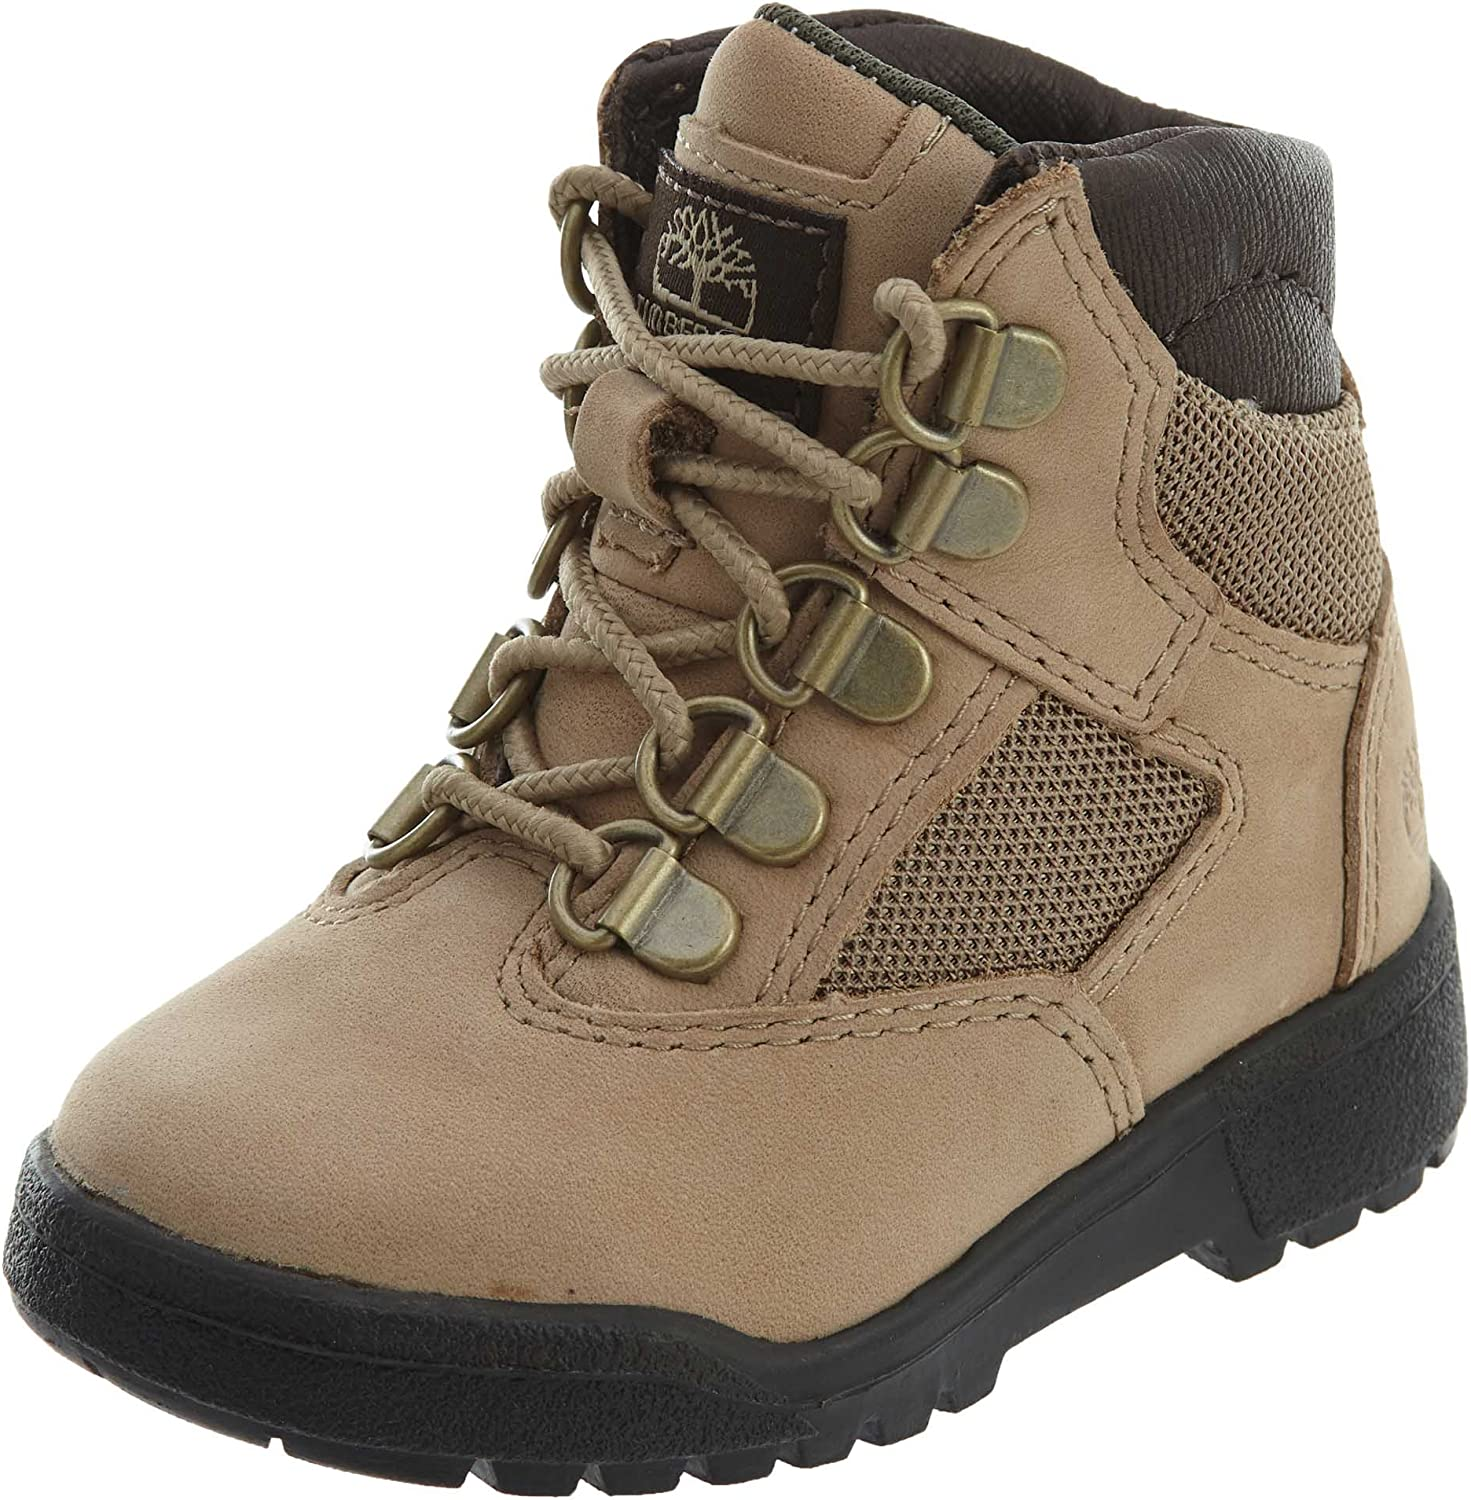 Beige 11 Little Kid M Timberland Kids Unisex 6 Leather//Fabric Field Boot Toddler//Little Kid